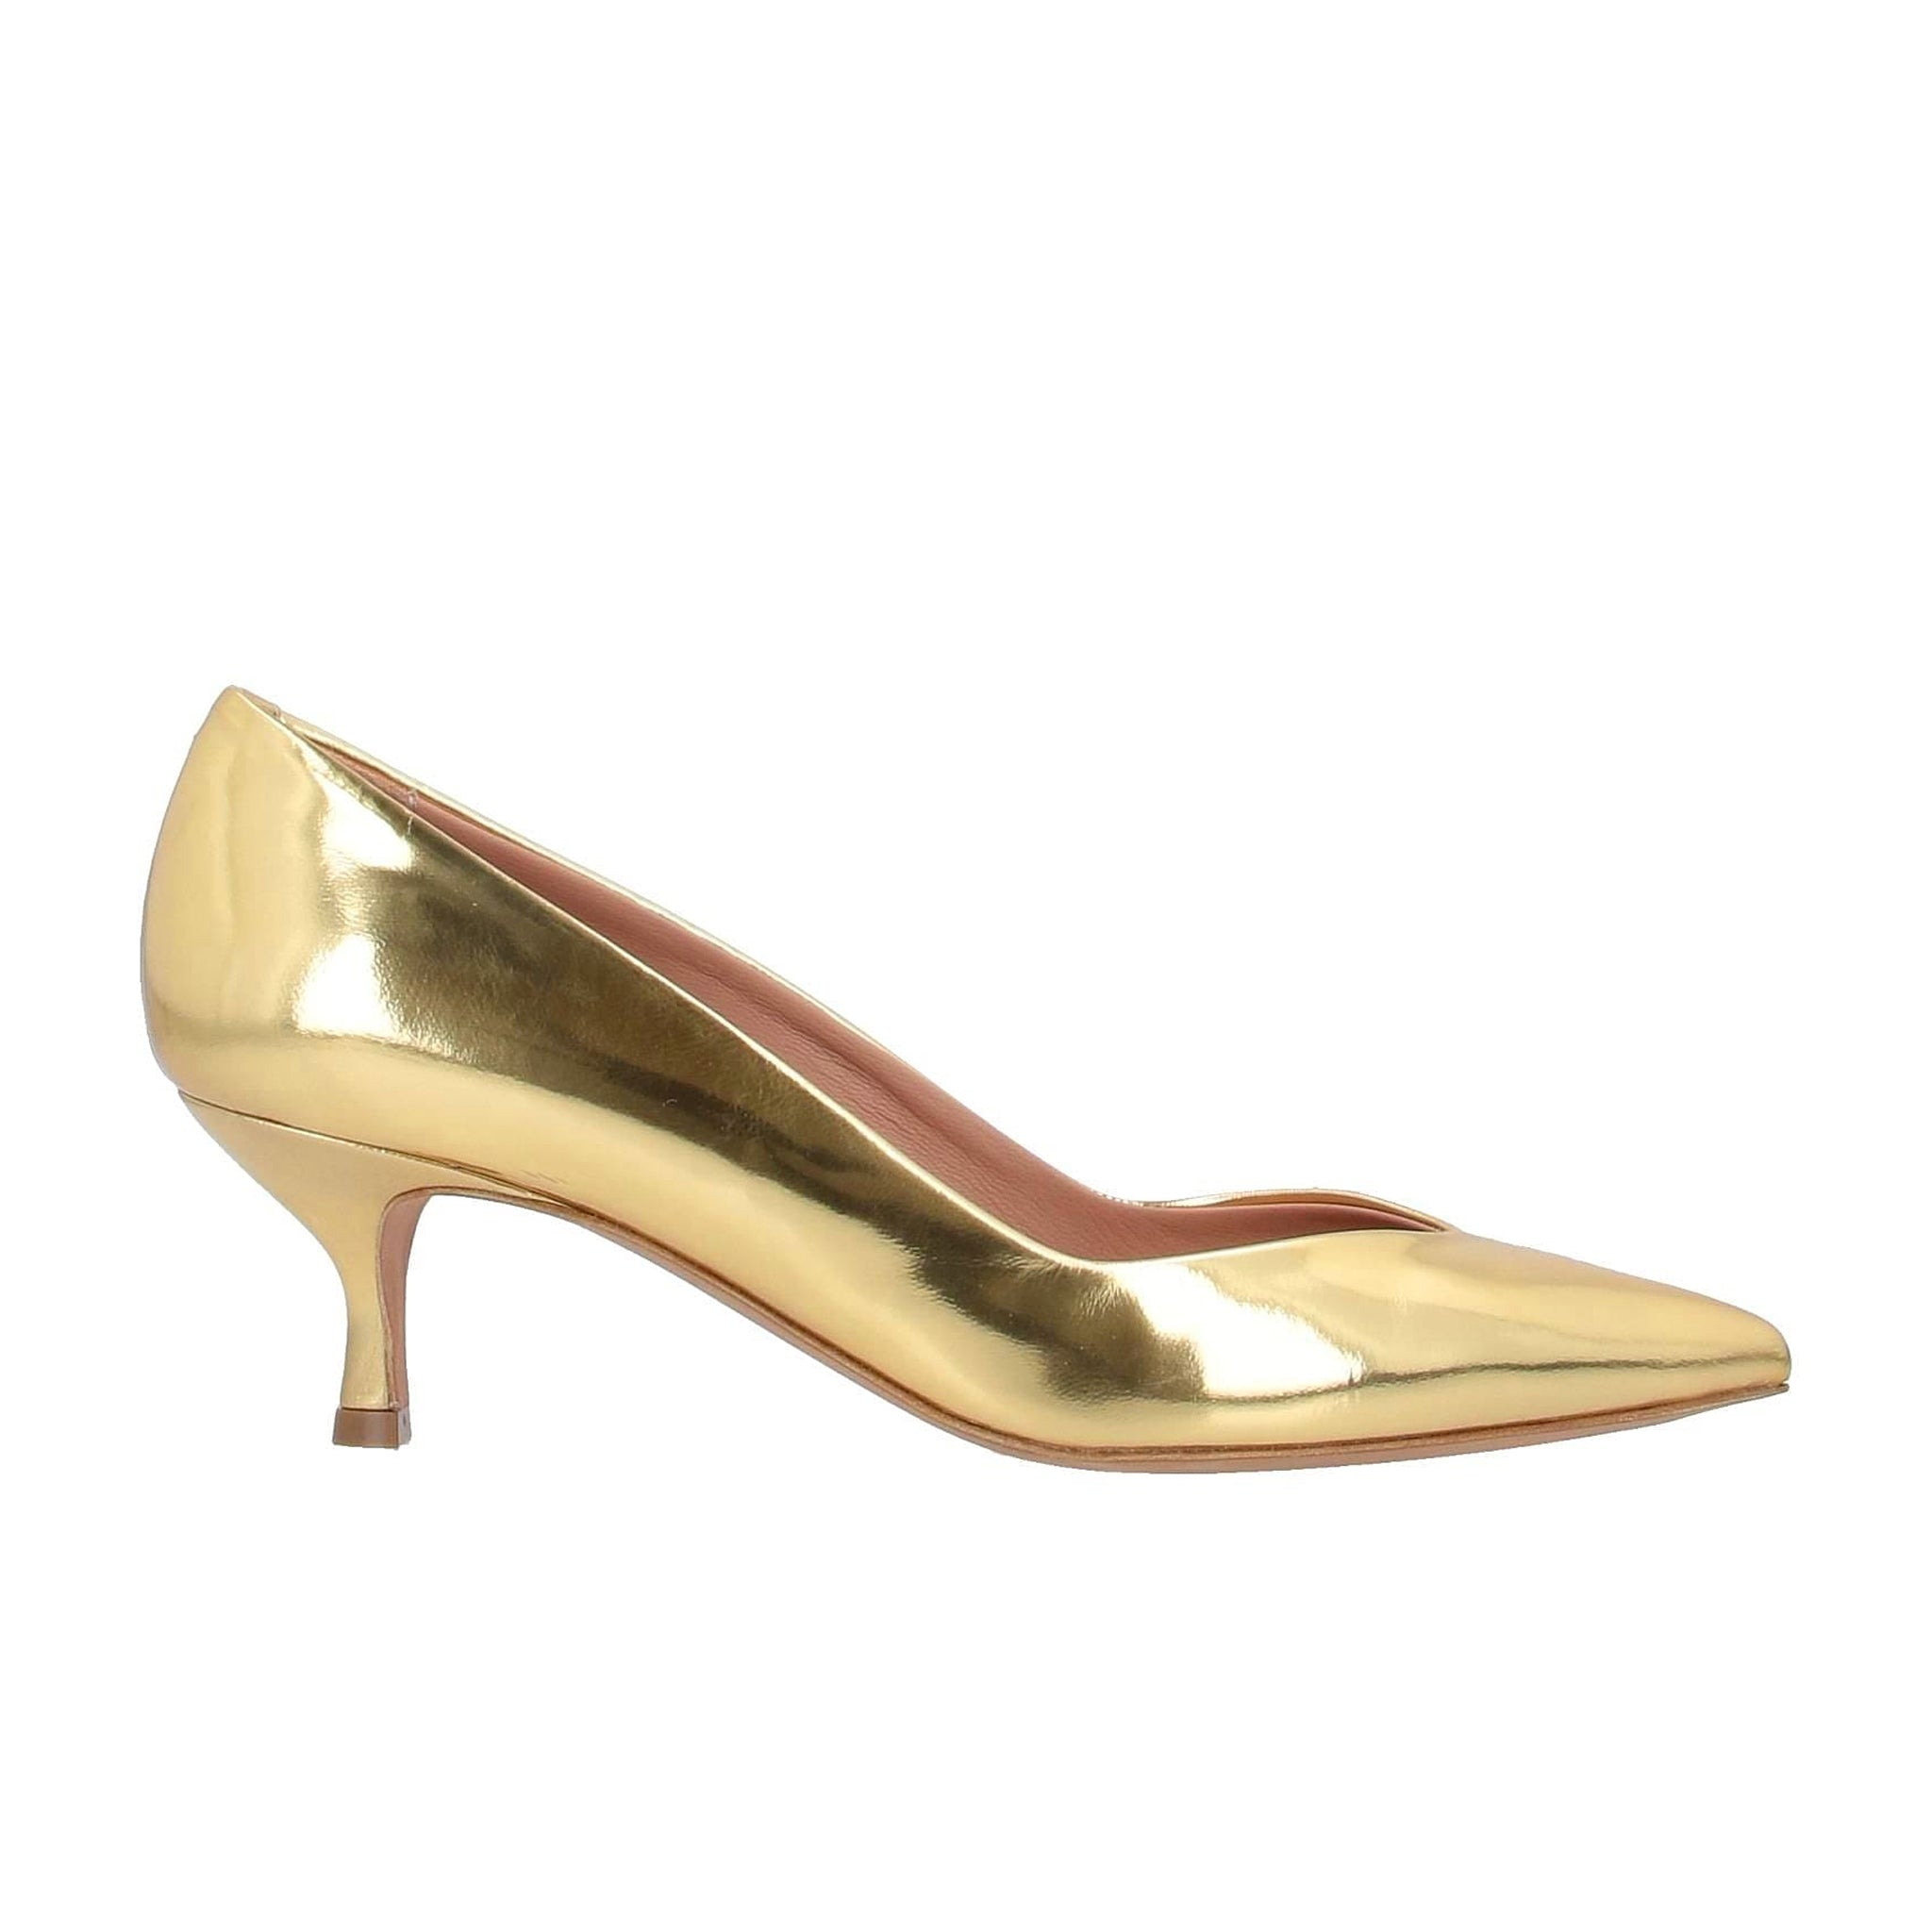 Golden Goose Patent Leather Pumps